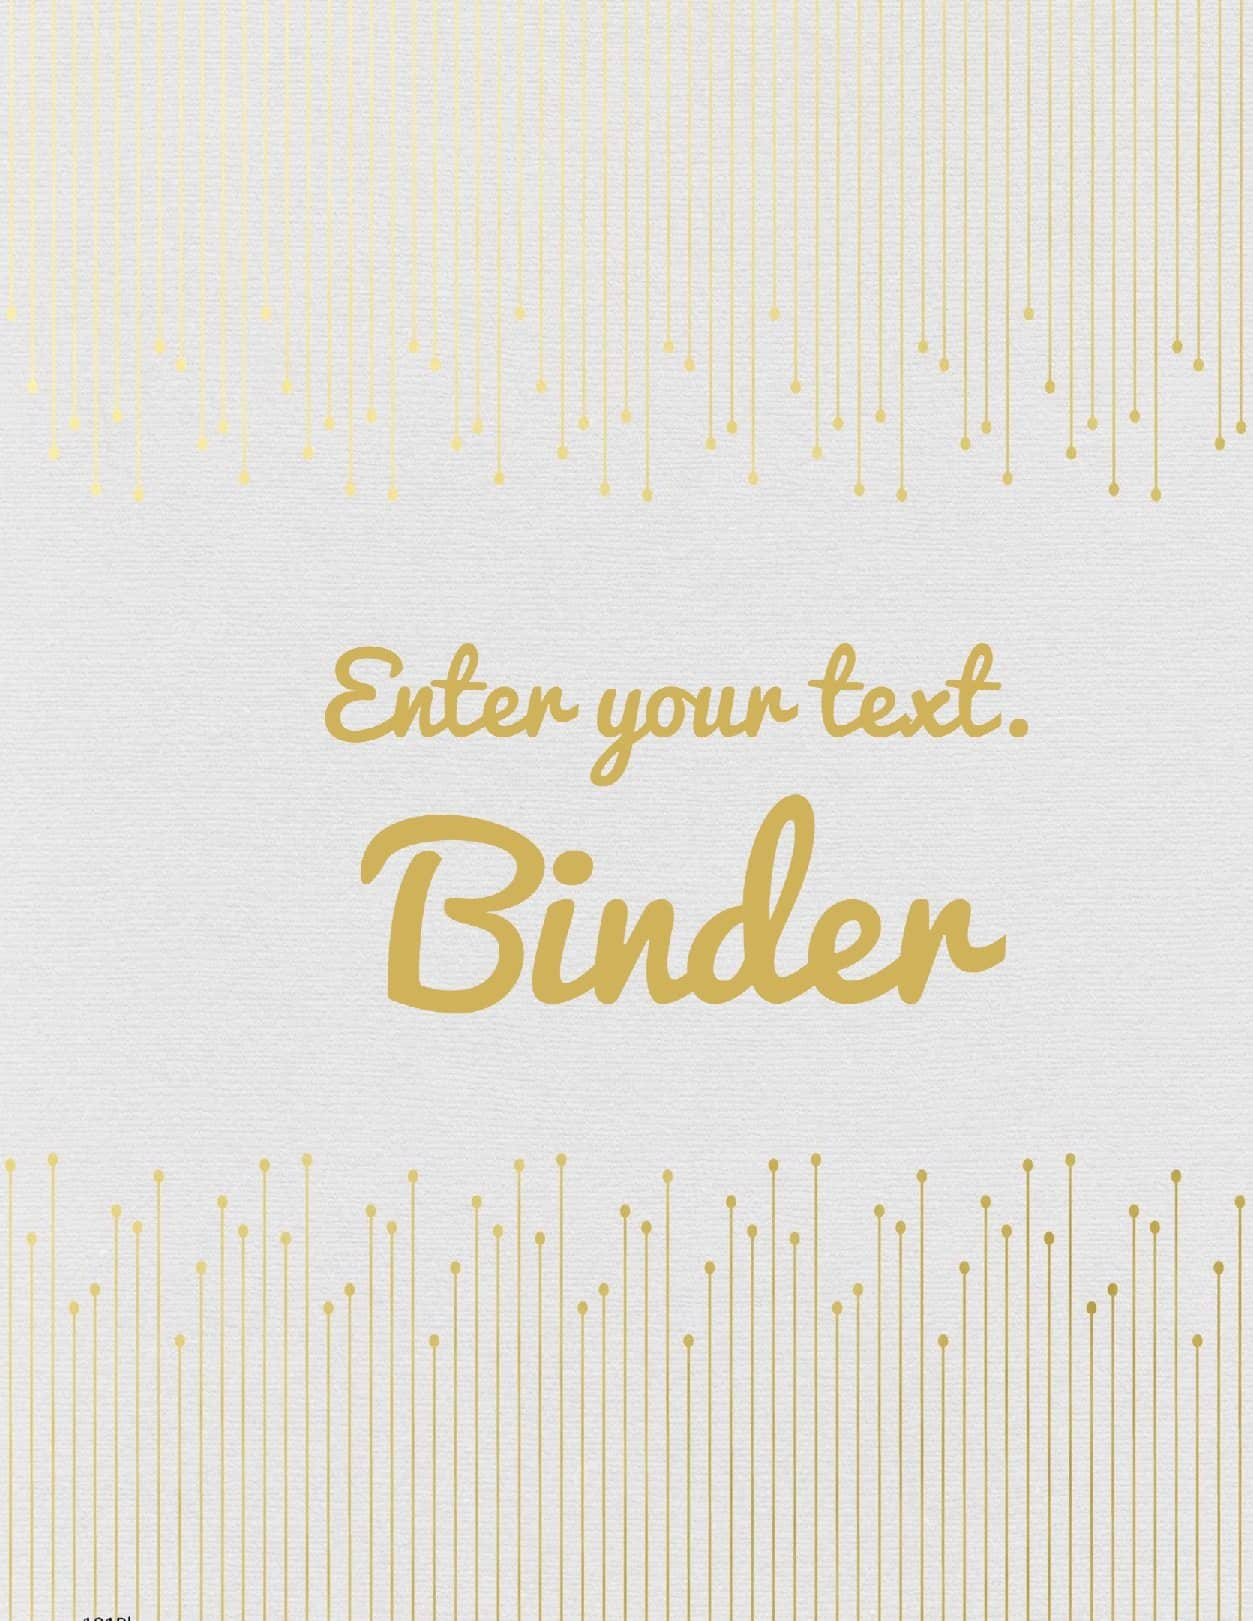 Free Binder Cover Templates   Customize Online & Print At Home   Free! - Free Printable Customizable Binder Covers